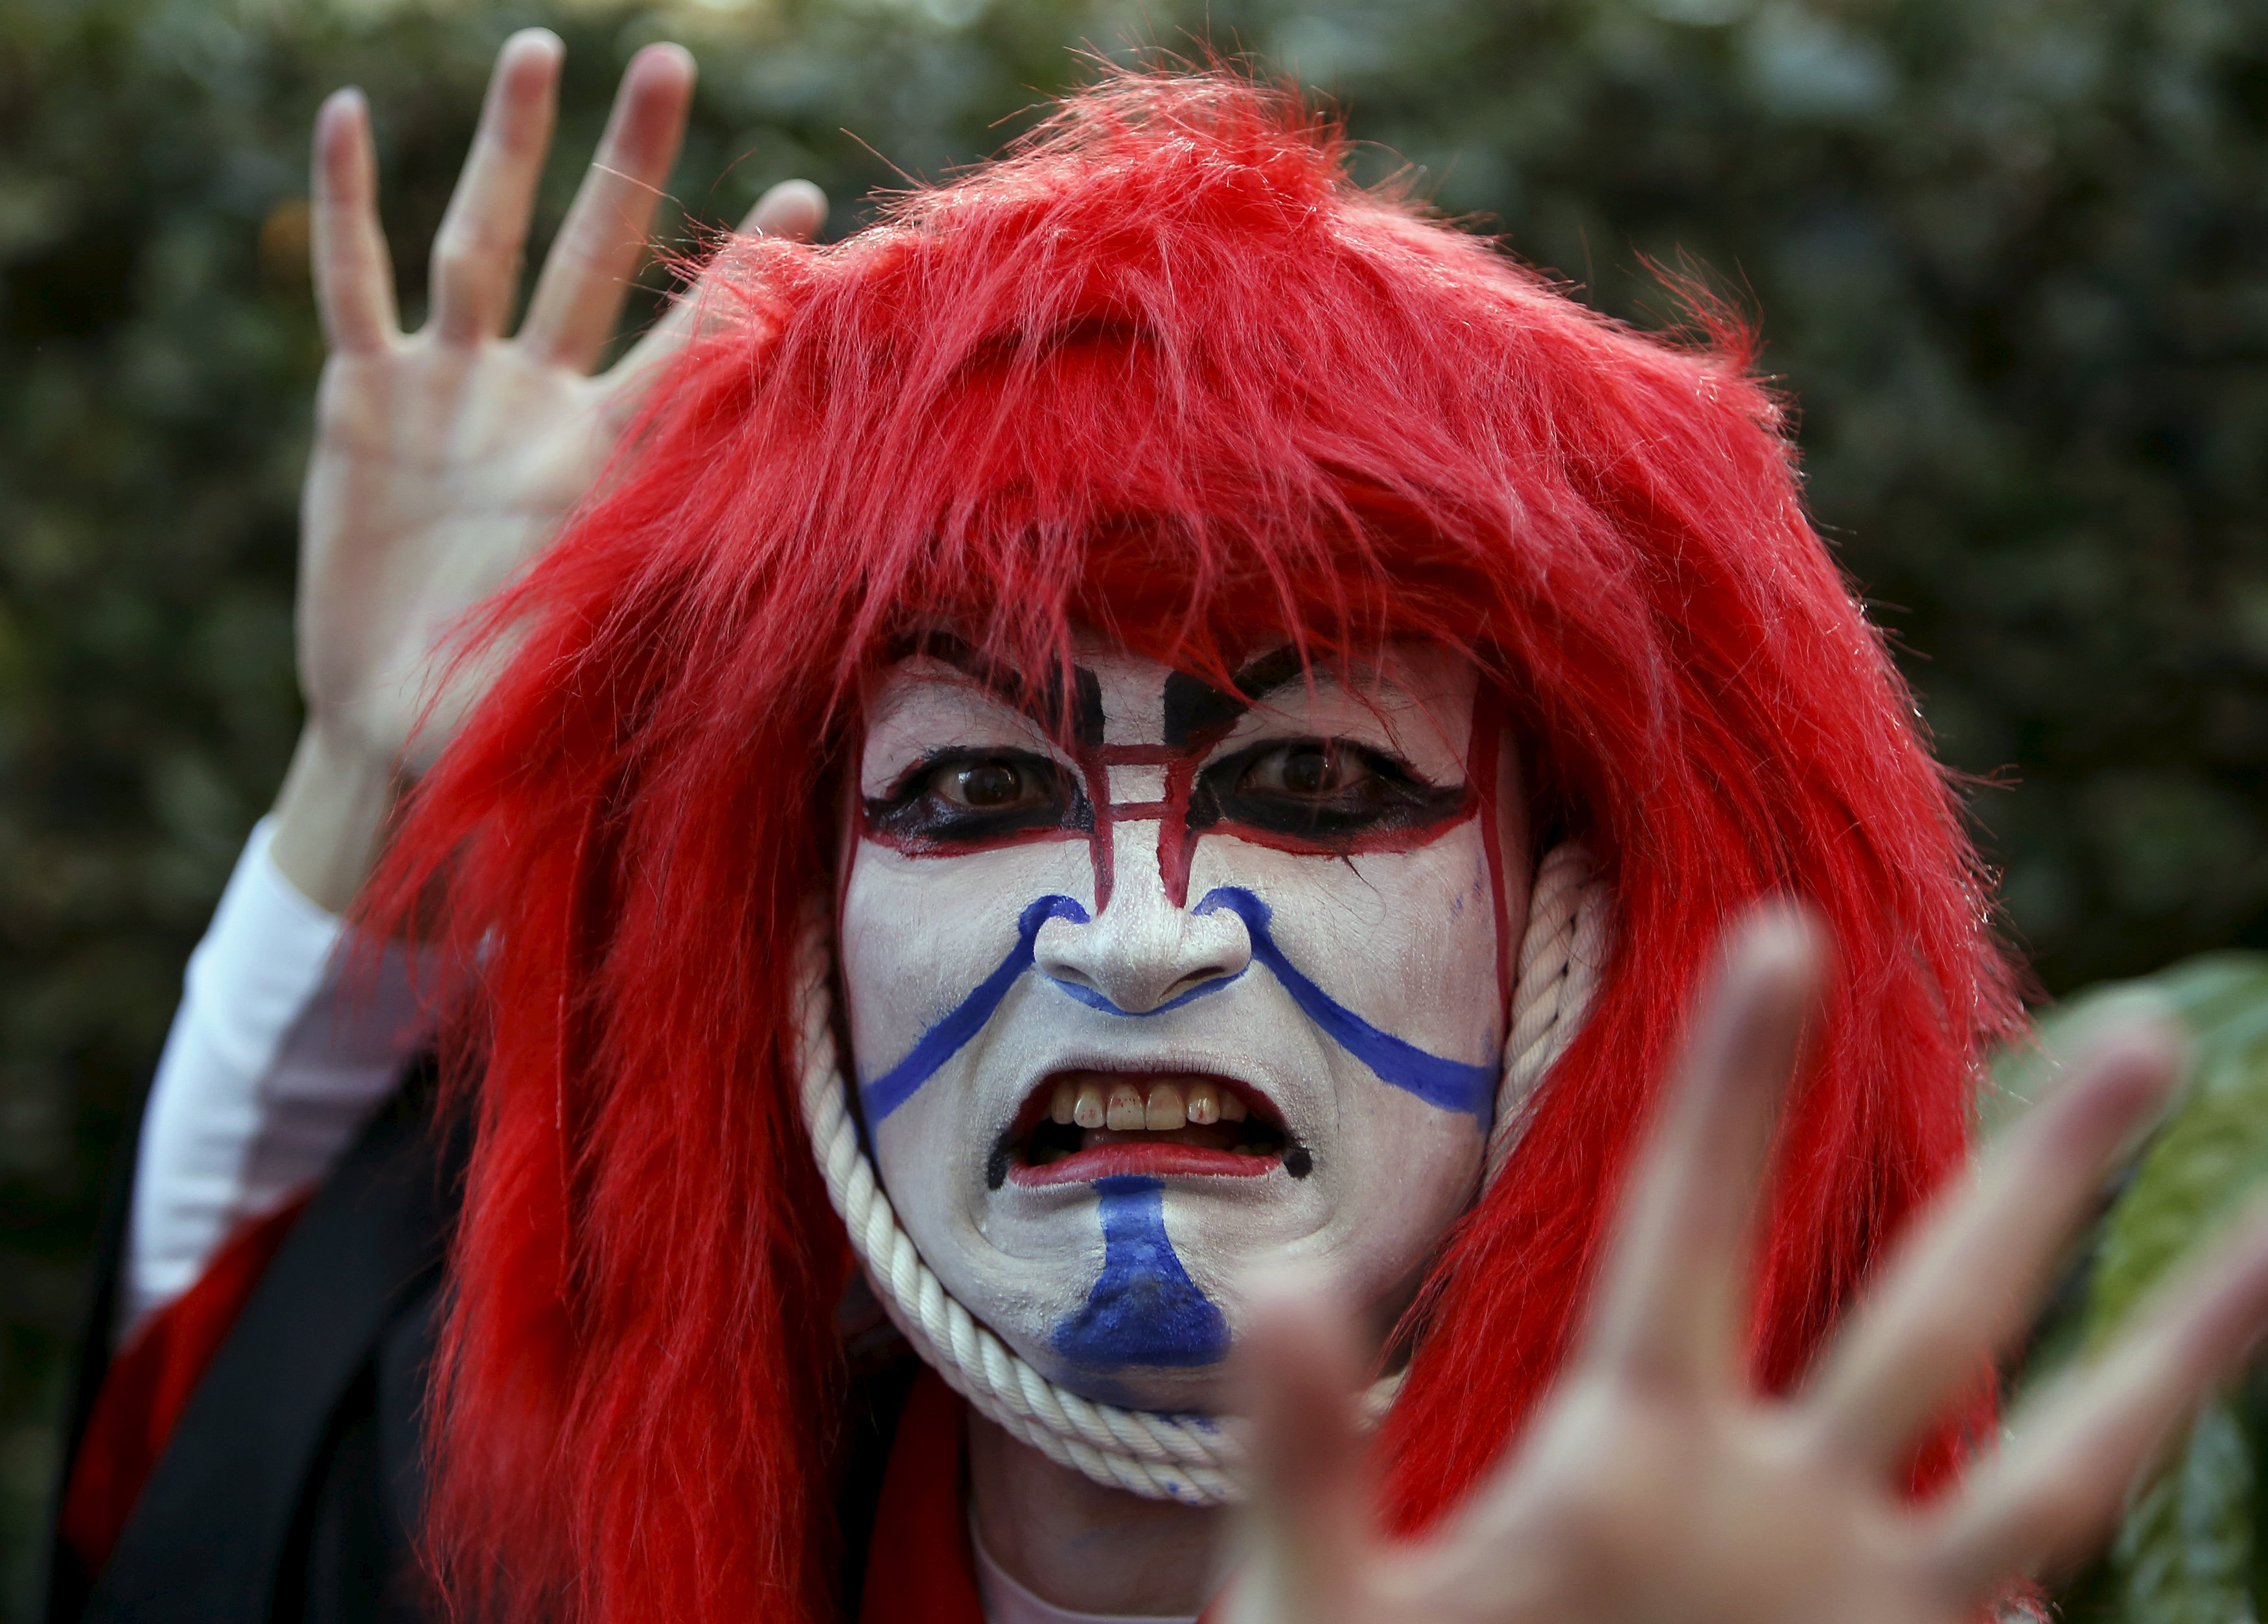 A participant in costume poses for a picture after a Halloween parade in Kawasaki, south of Tokyo, Japan October 25, 2015. Photo: Reuters